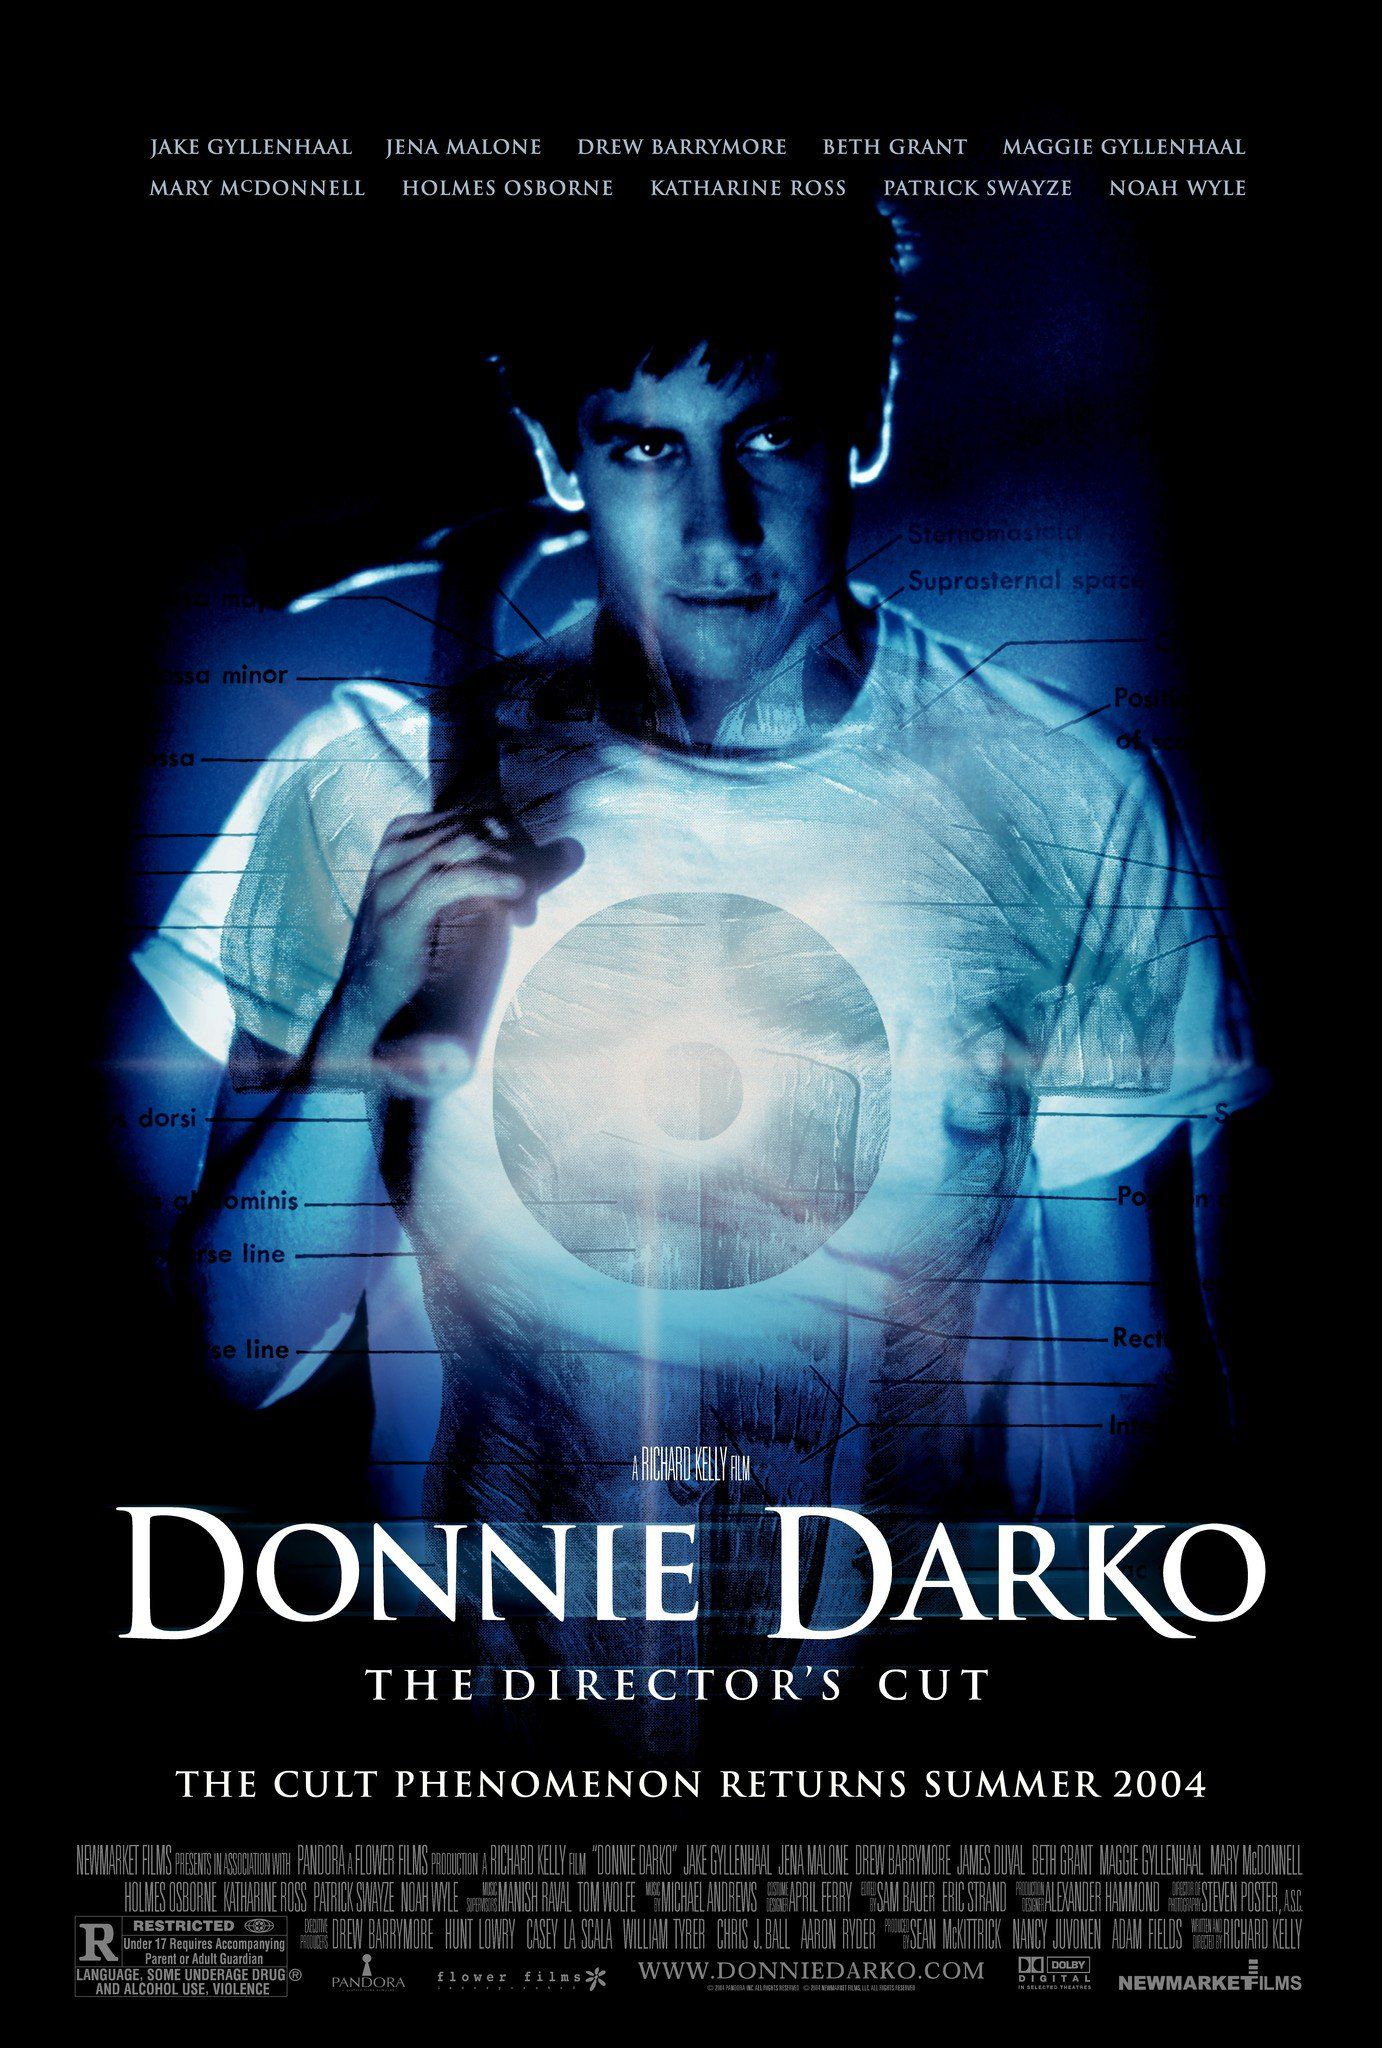 Donnie Darko - The Director's Cut - Film (2004) streaming VF gratuit complet